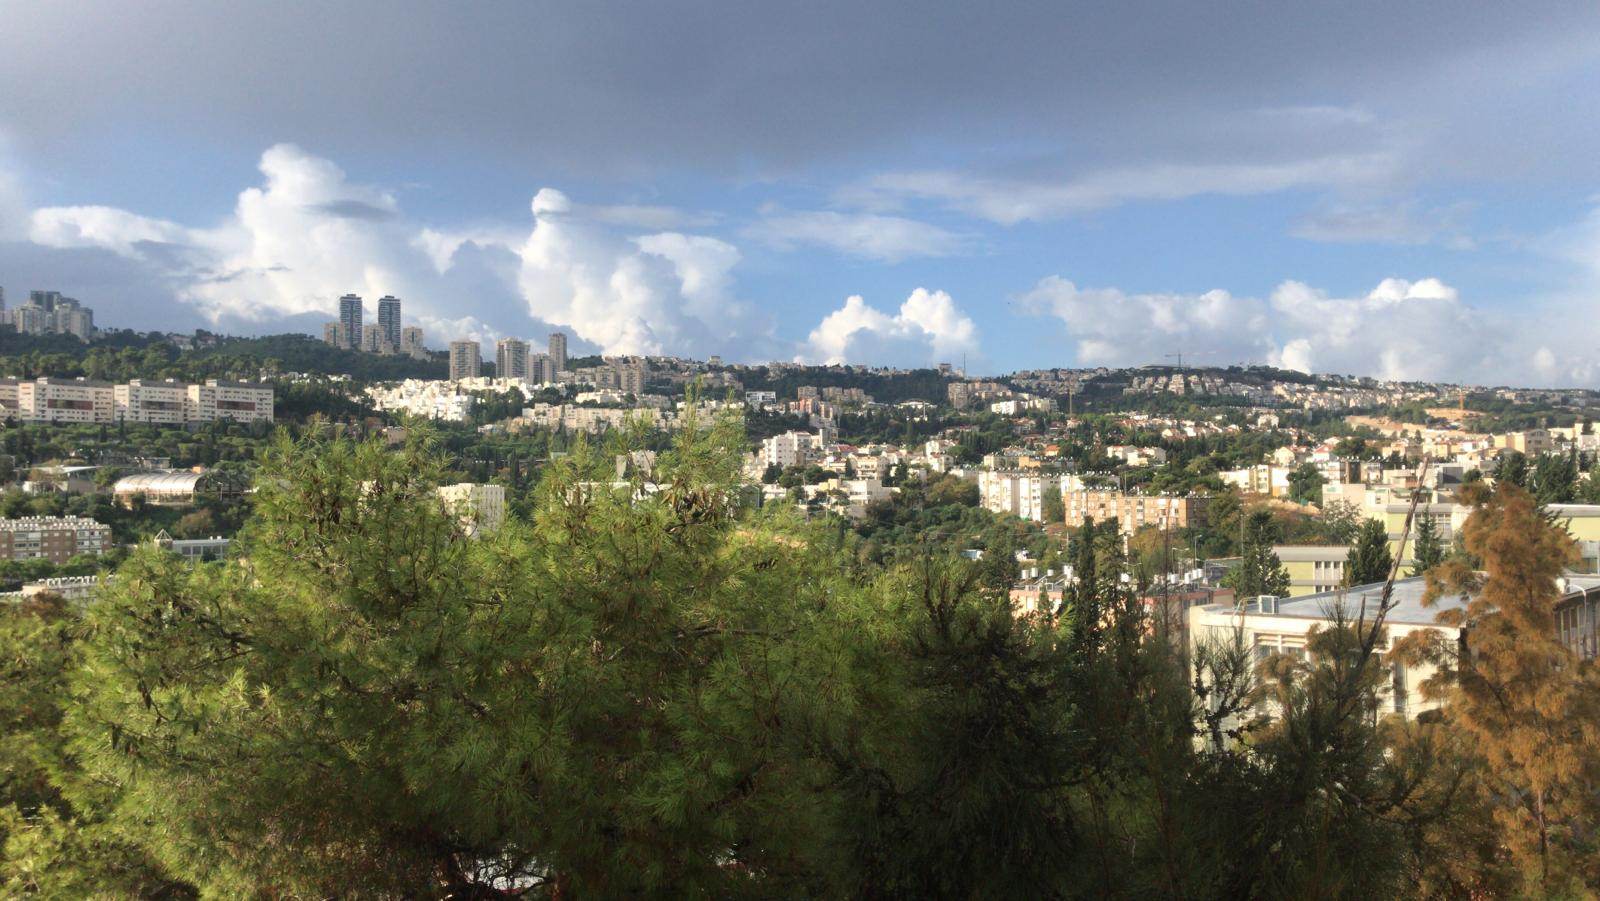 Mt. Carmel in Haifa, Israel, one thing to consider when weighing the study abroad advantages and disadvantages